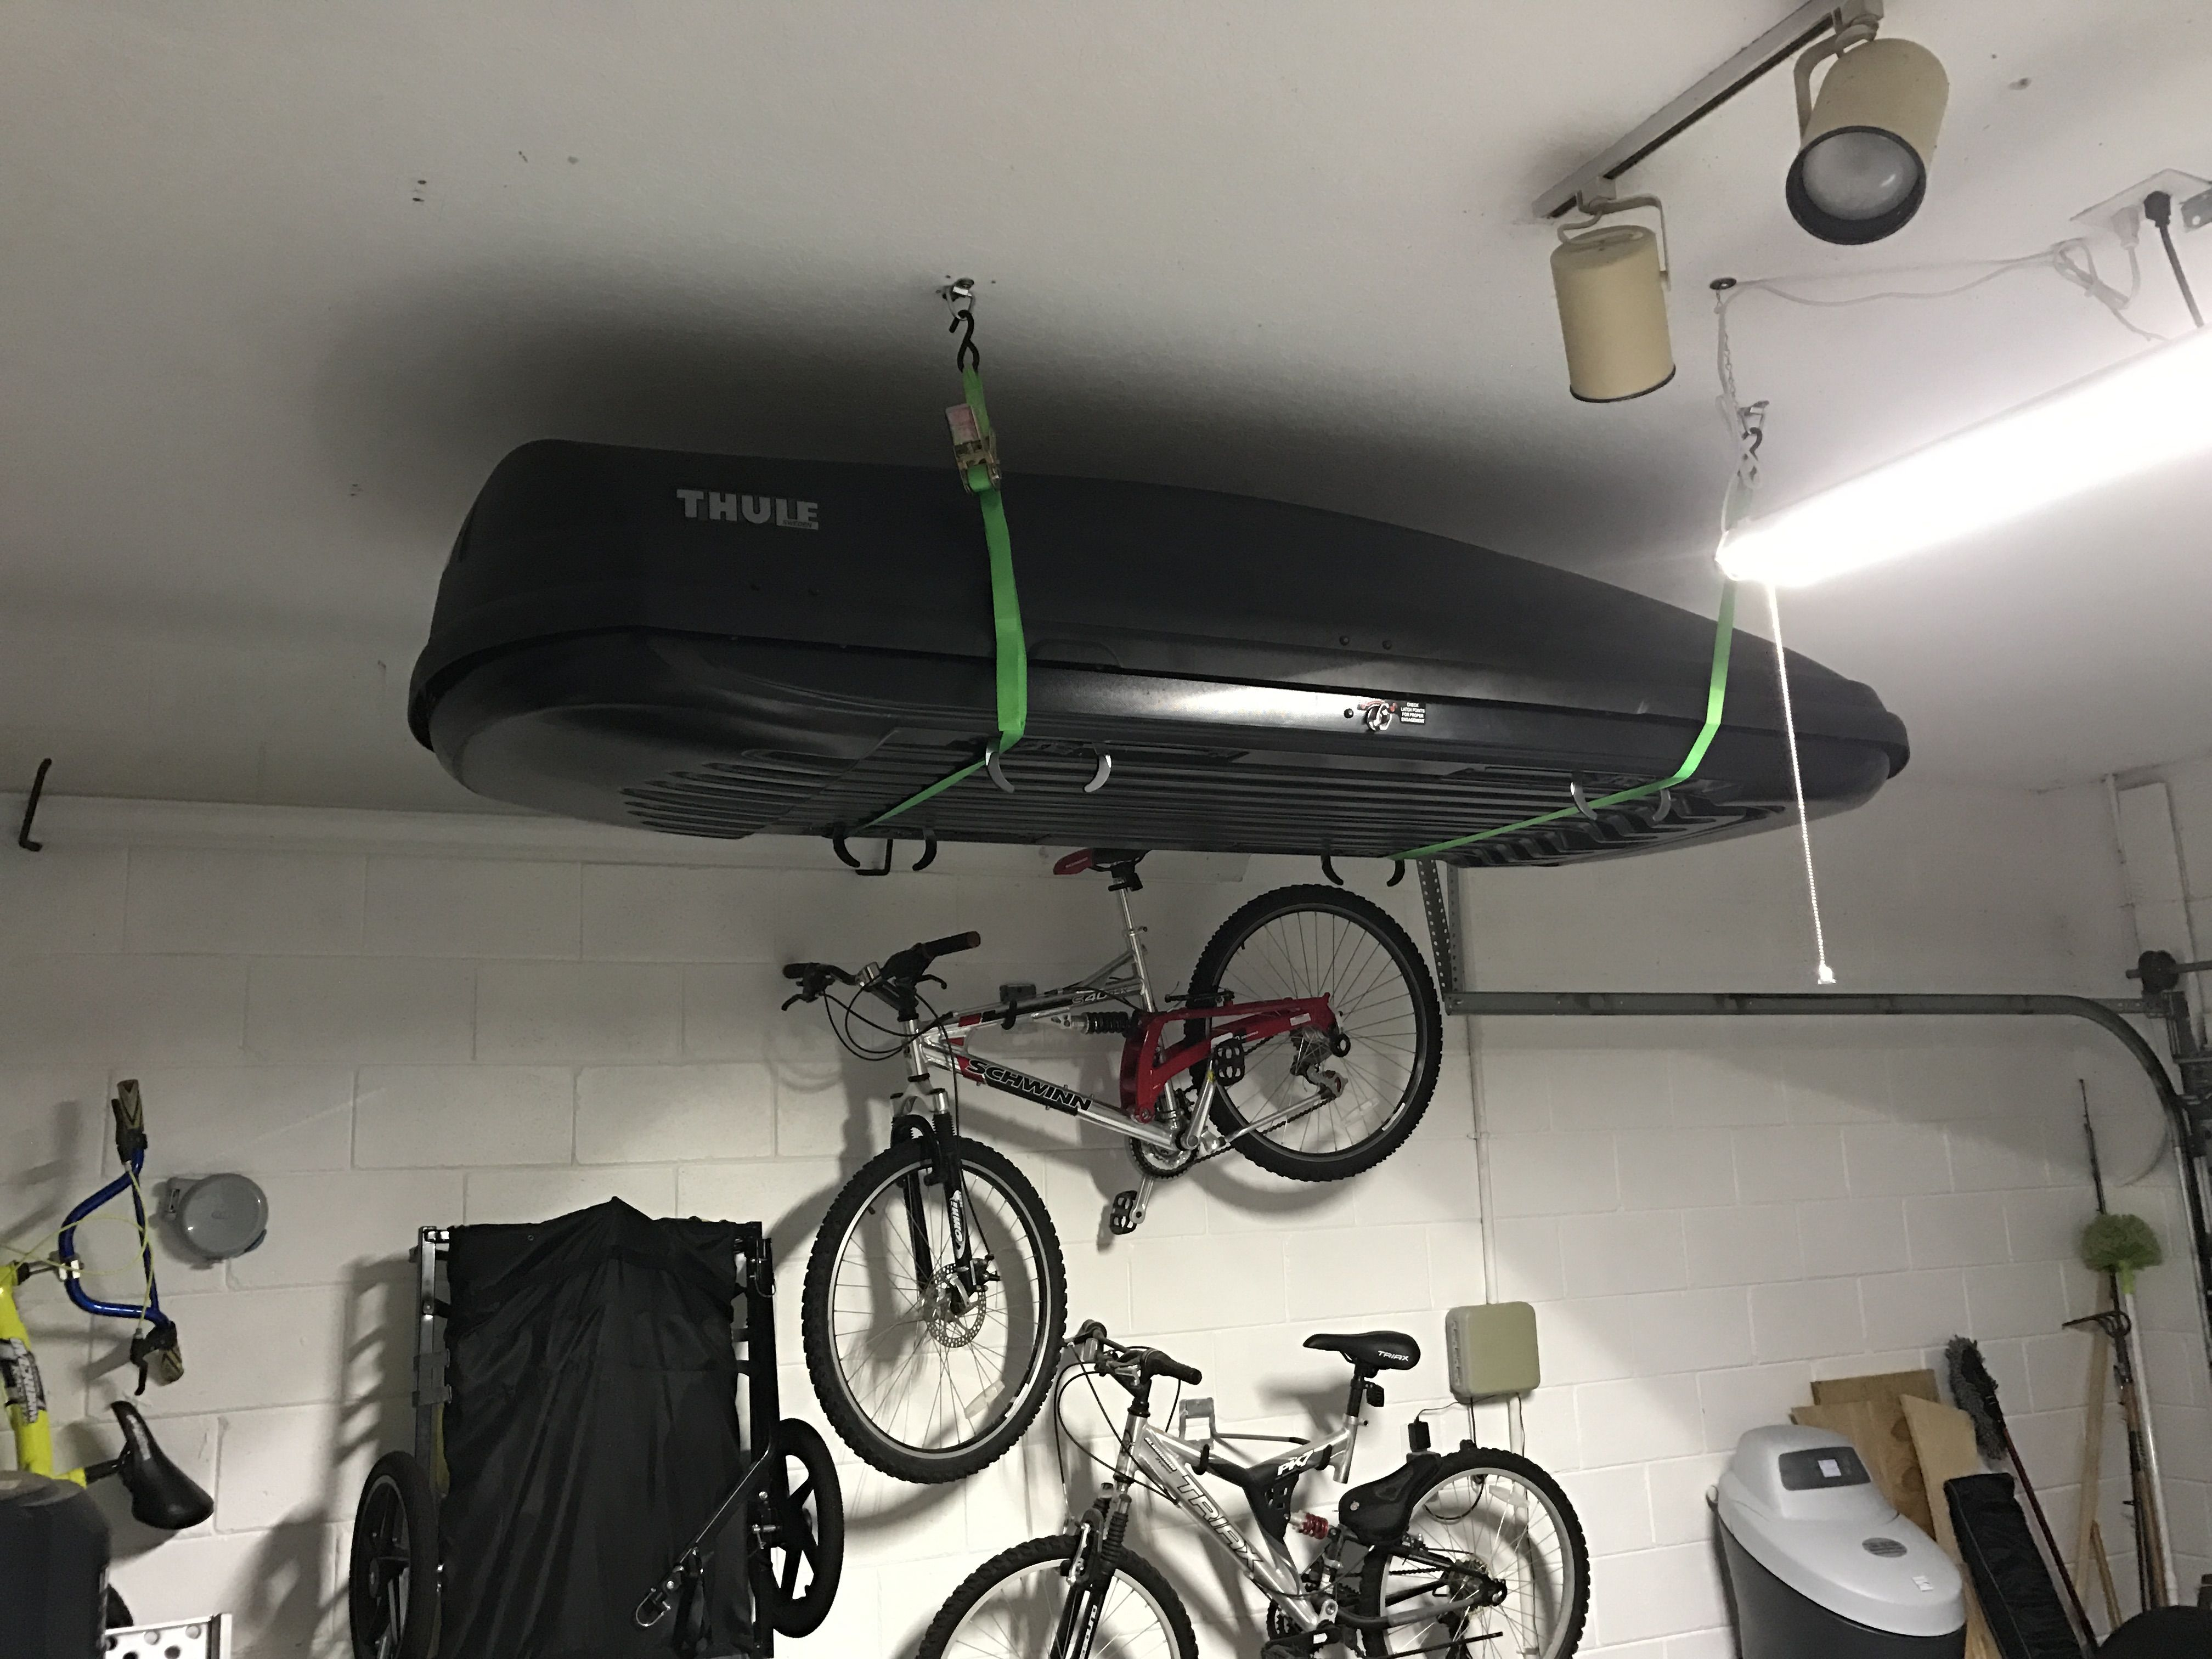 Garage Storage Of Rooftop Cargo Carrier Thule Garage Storage Cargo Carrier Cargo Storage